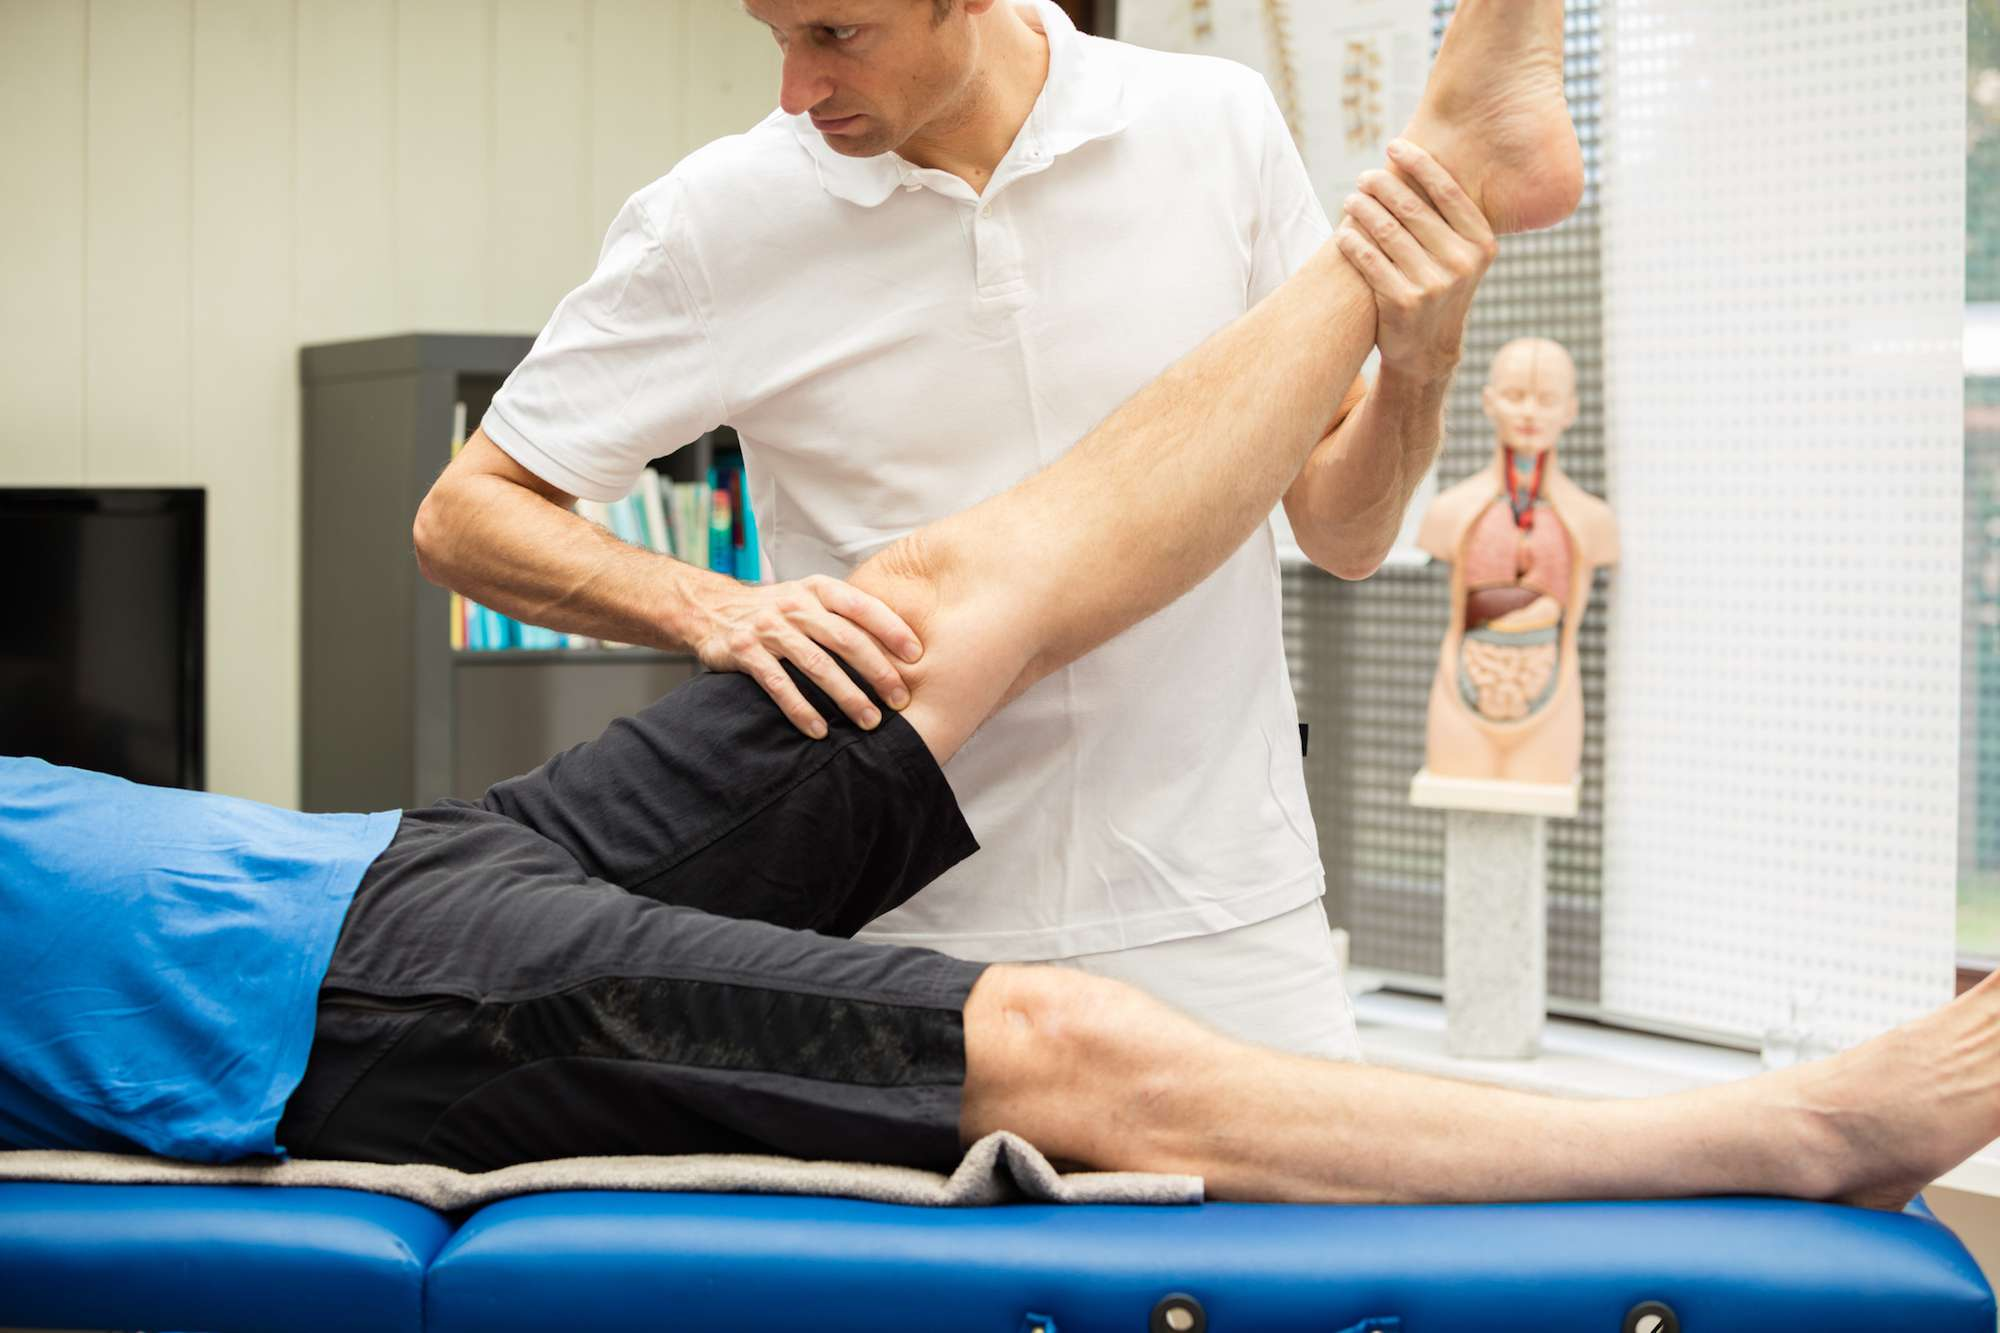 How to Perform a Straight Leg Raise Test